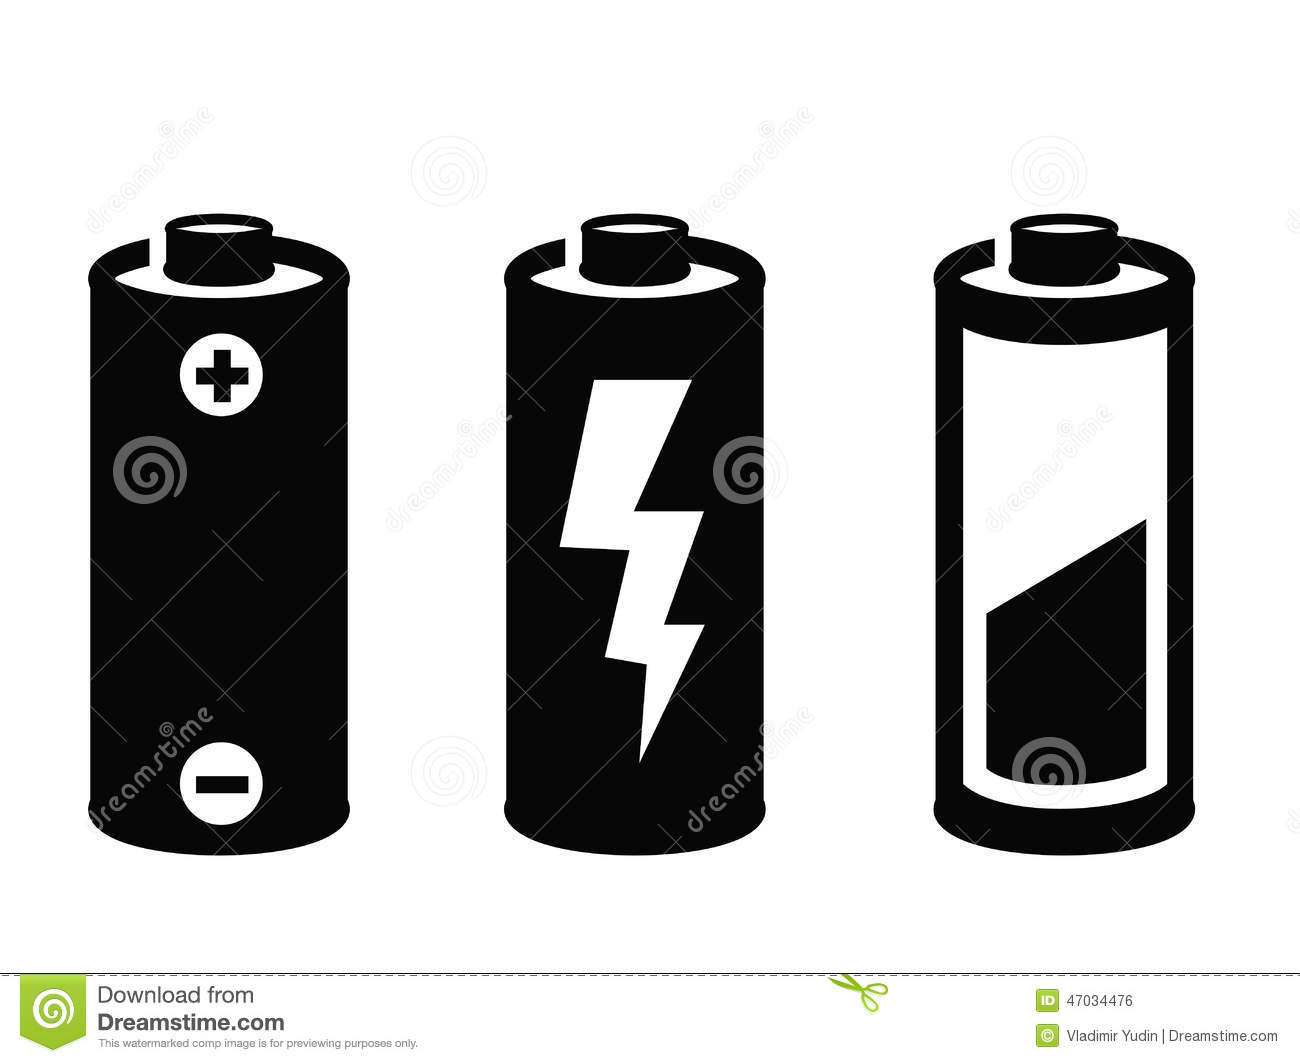 595 Battery free clipart.